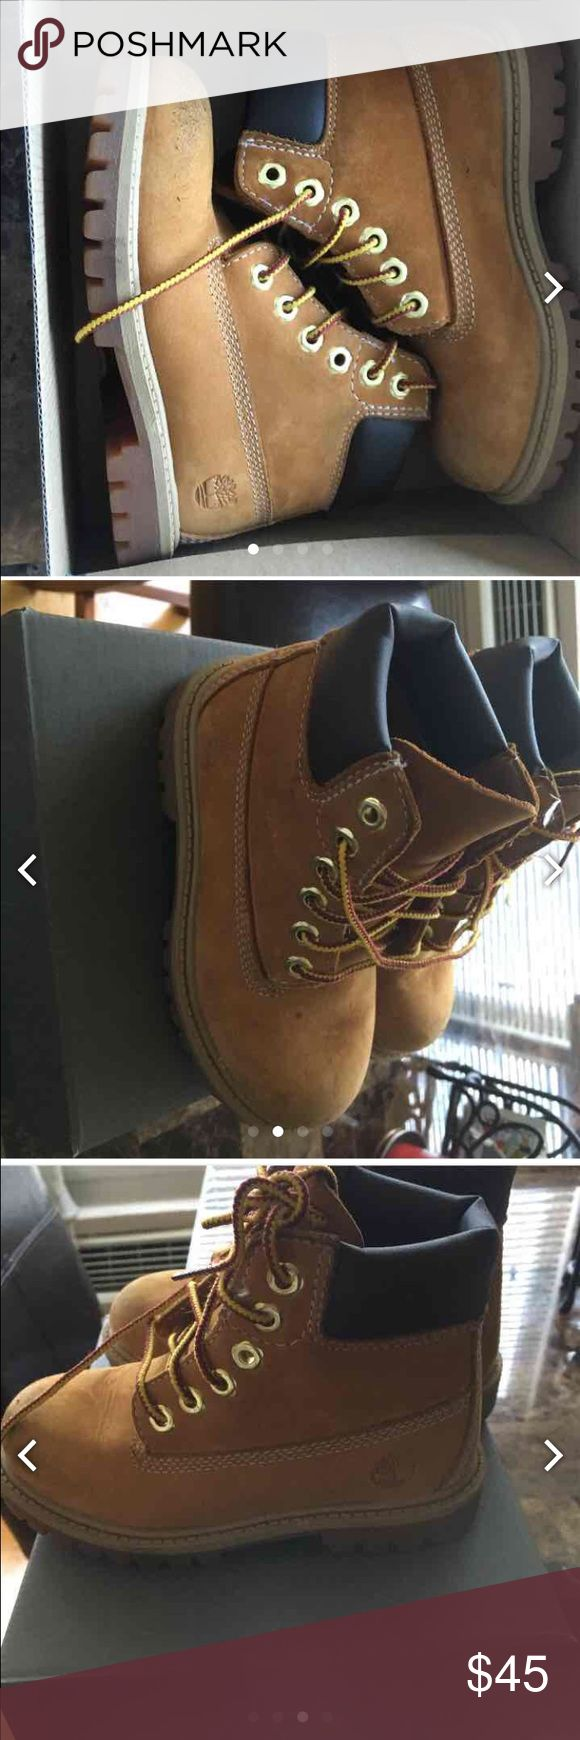 toddler timberland boots size 7.5c